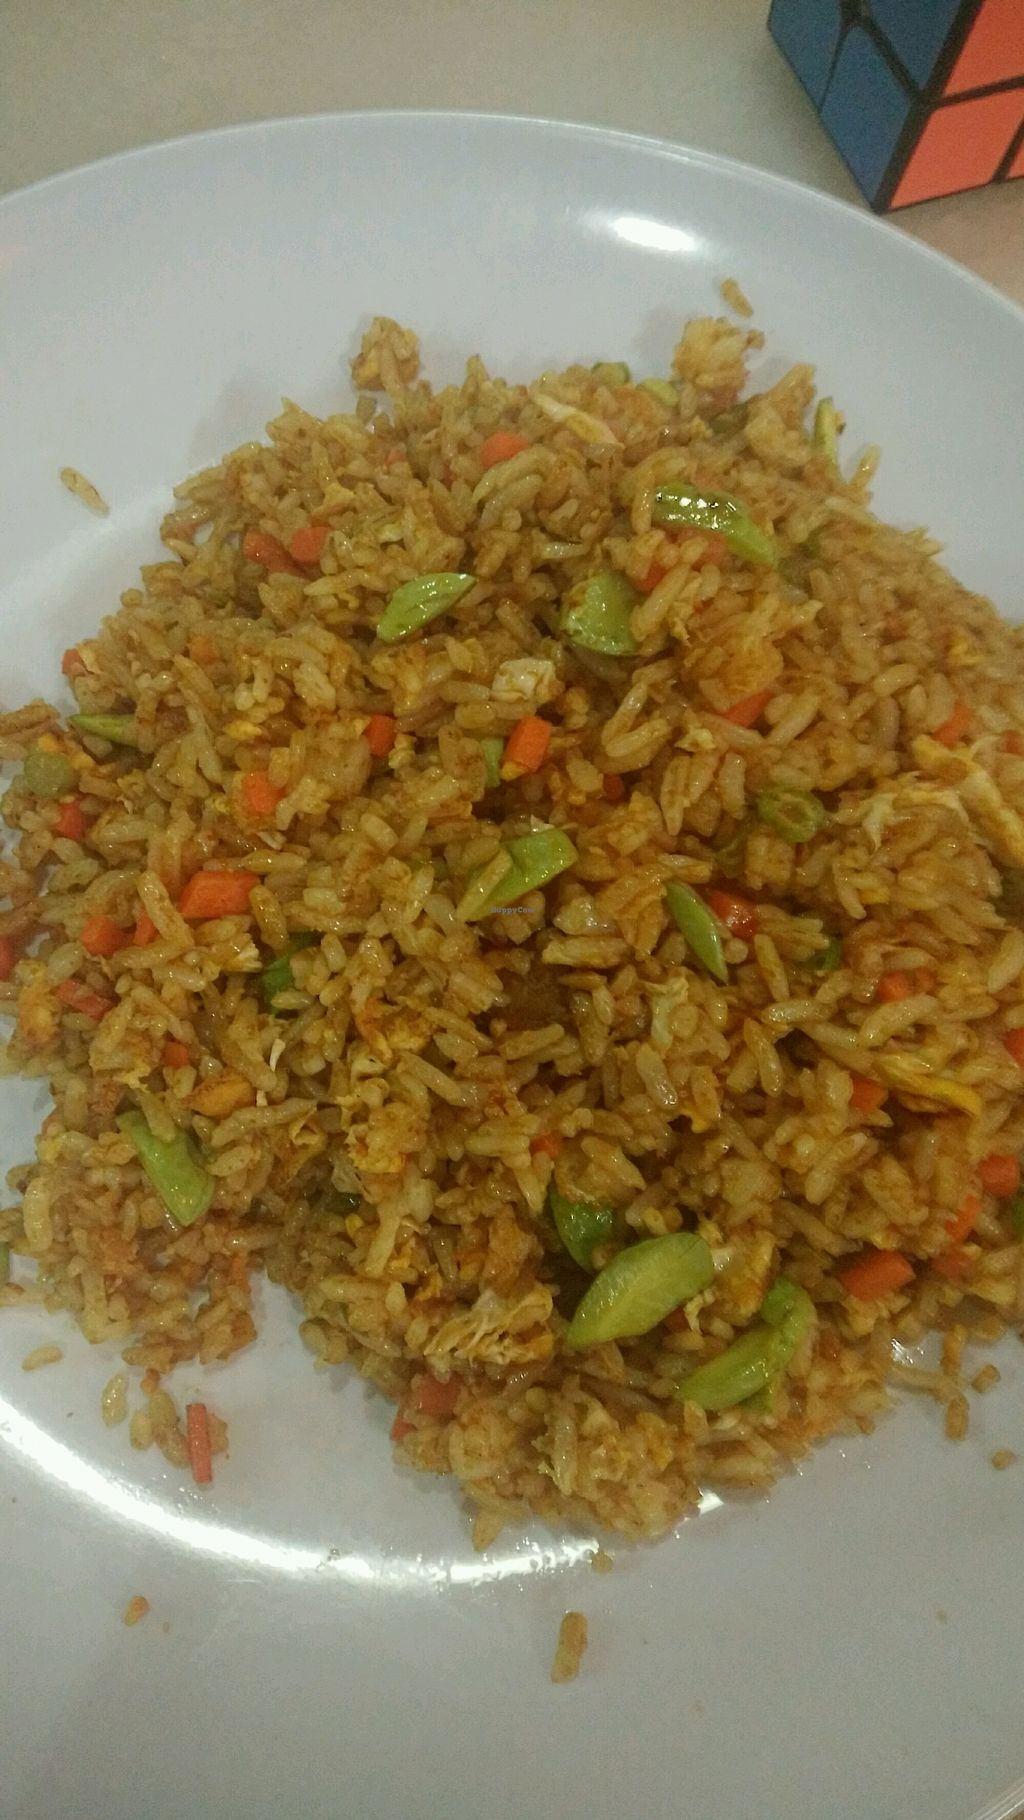 """Photo of Ysin - Indah  by <a href=""""/members/profile/Jo-AnnTan"""">Jo-AnnTan</a> <br/>Petai fried rice <br/> December 9, 2017  - <a href='/contact/abuse/image/85774/333675'>Report</a>"""